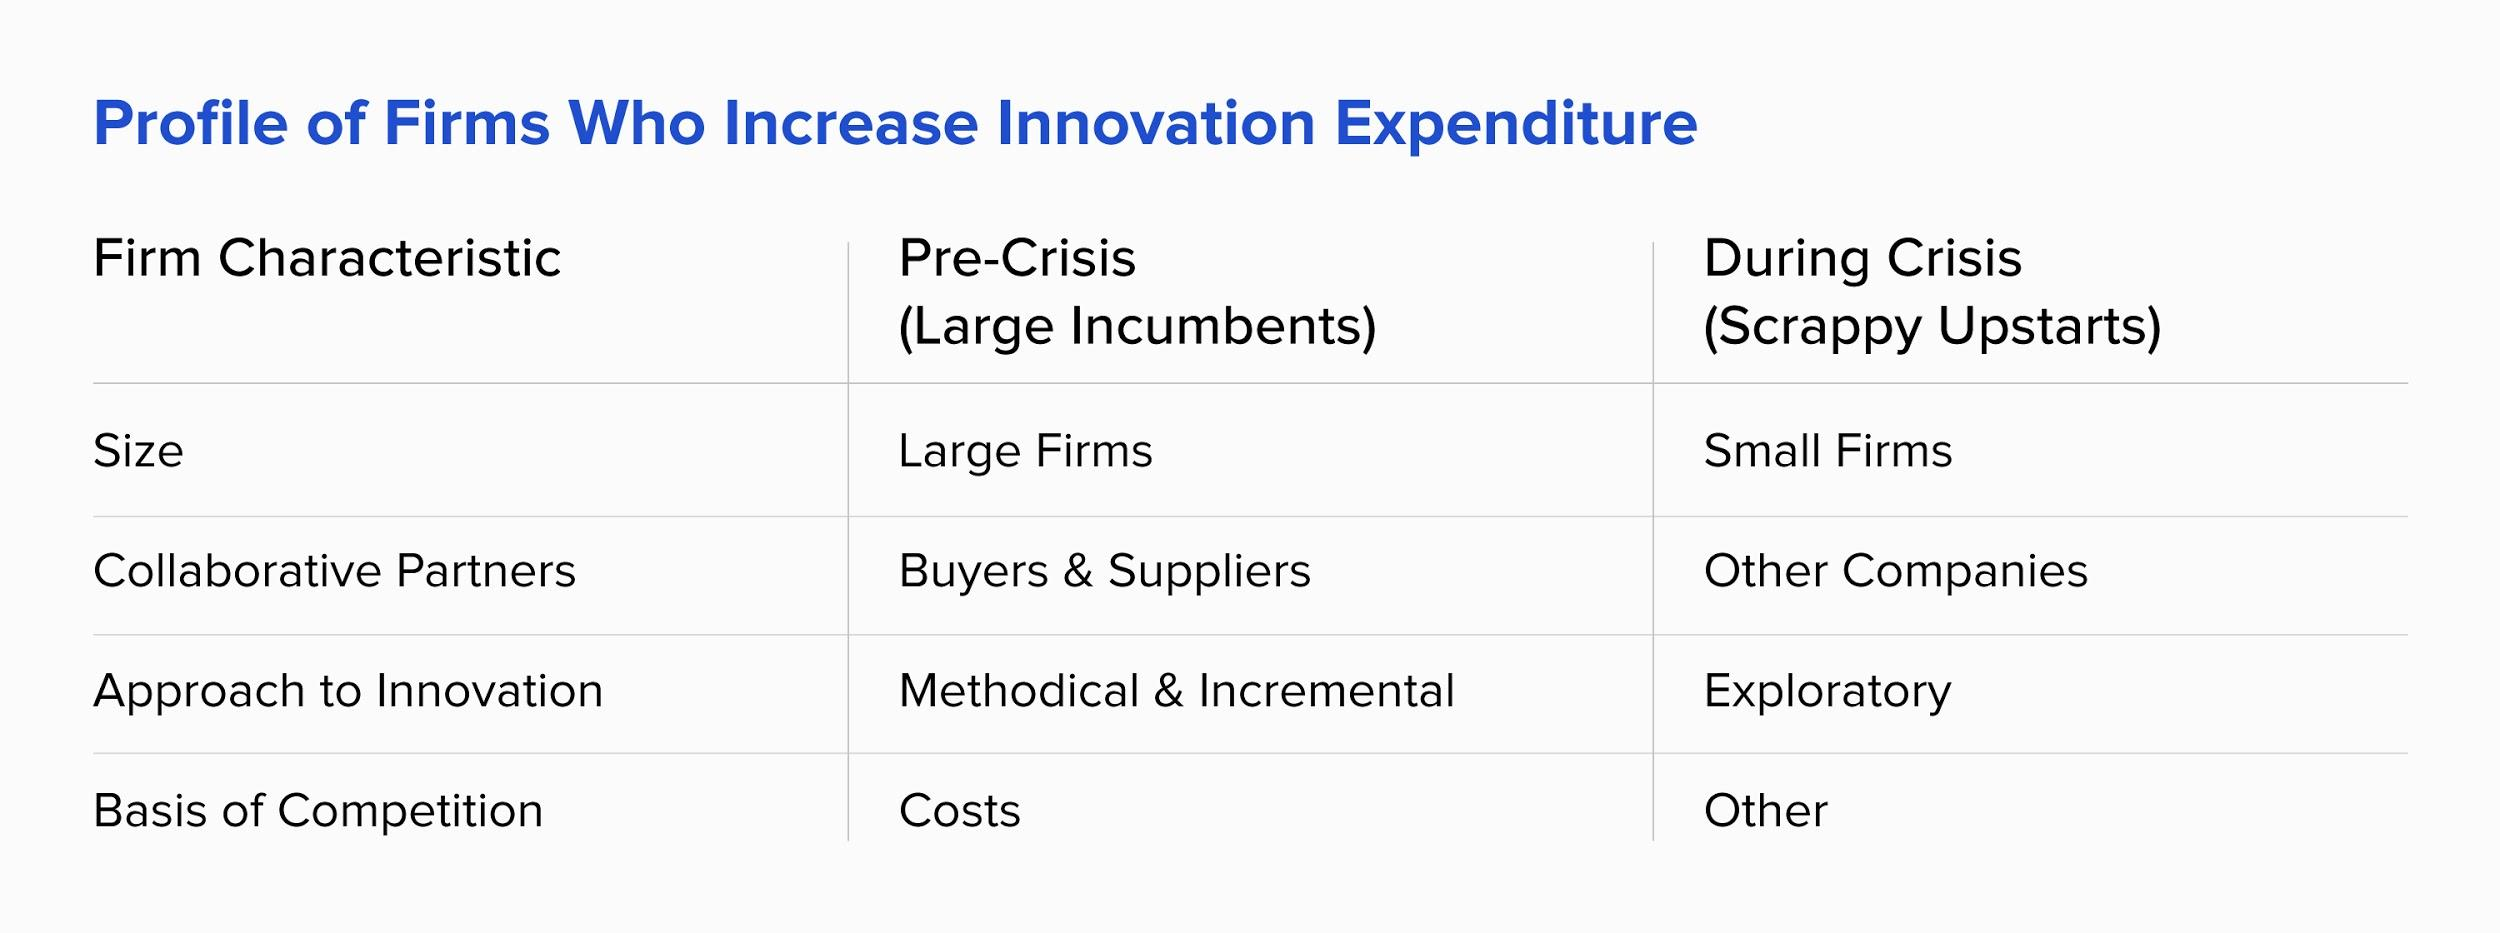 Firms that increase innovation expenditure